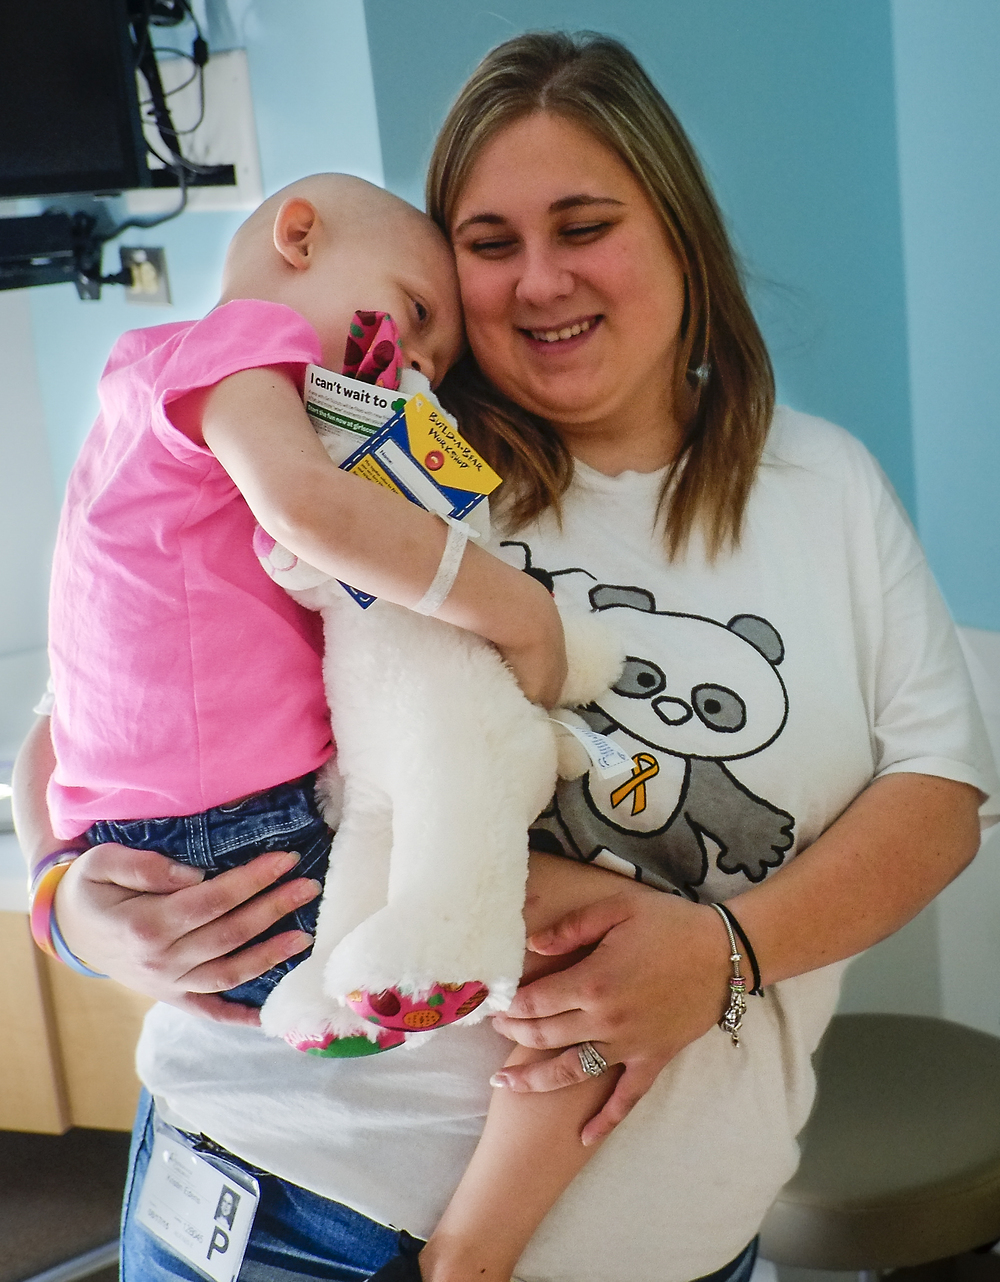 "Kristin Edens carries her daughter out of a hospital room during one of their visits to Nationwide Children's Hospital in Columbus. The sometimes weekly visits to Children's took its toll both on Alexes and her family. ""There were times where it just seemed like too much, like we were living out of a bag, but what are you going to do when your child's life is at stake?"""